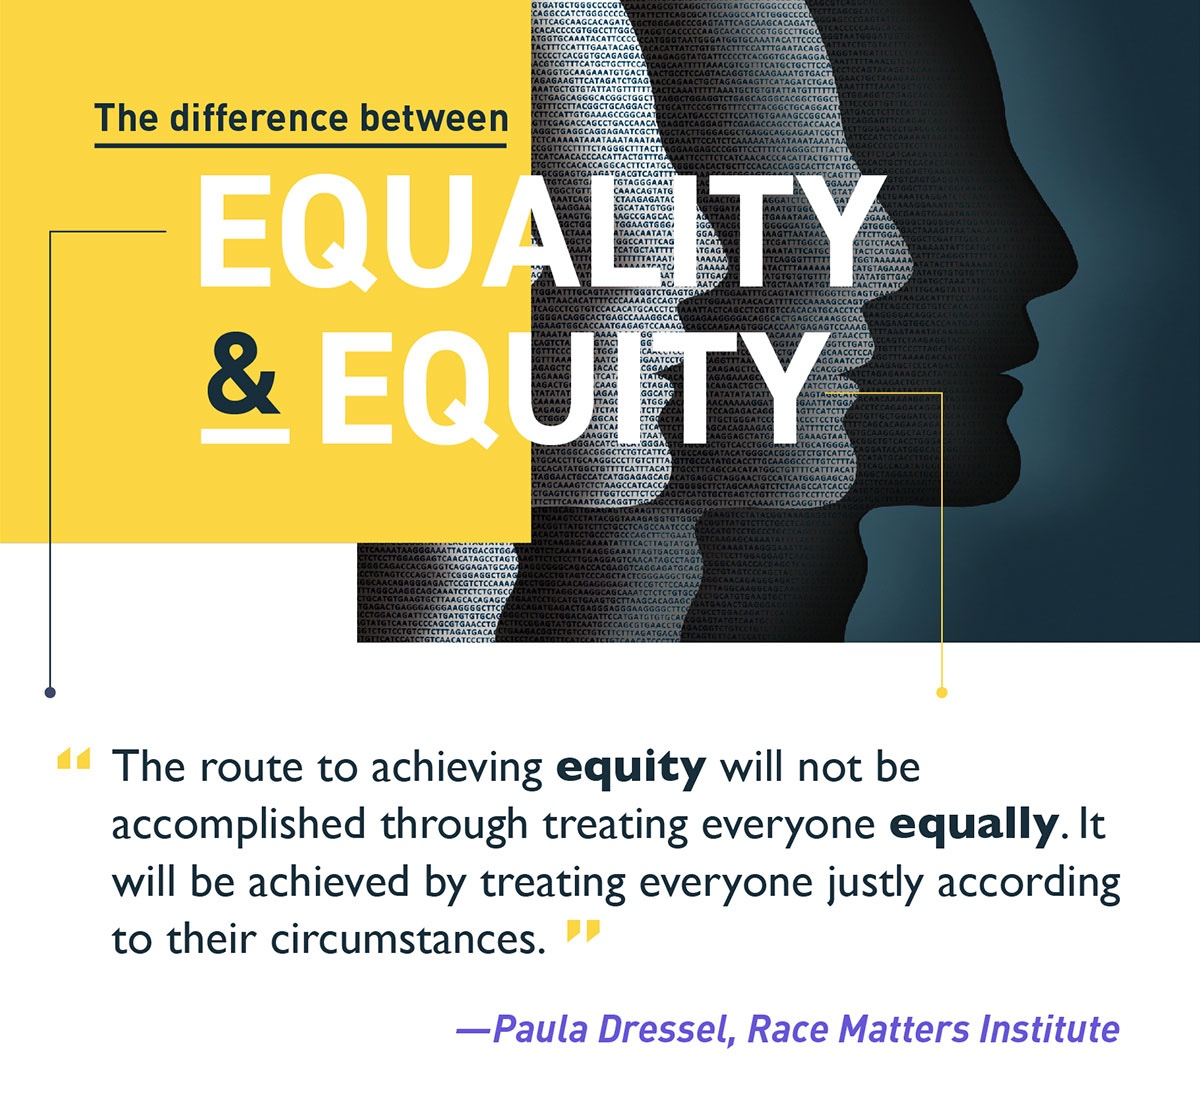 "From ""Racial Equality or Racial Equity? The Difference It Makes"" by Paula Dressel. April 2014. Available at  https://viablefuturescenter.org/racemattersinstitute/2014/04/02/racial-equality-or-racial-equity-the-difference-it-makes/ . Accessed on July 27, 2019."